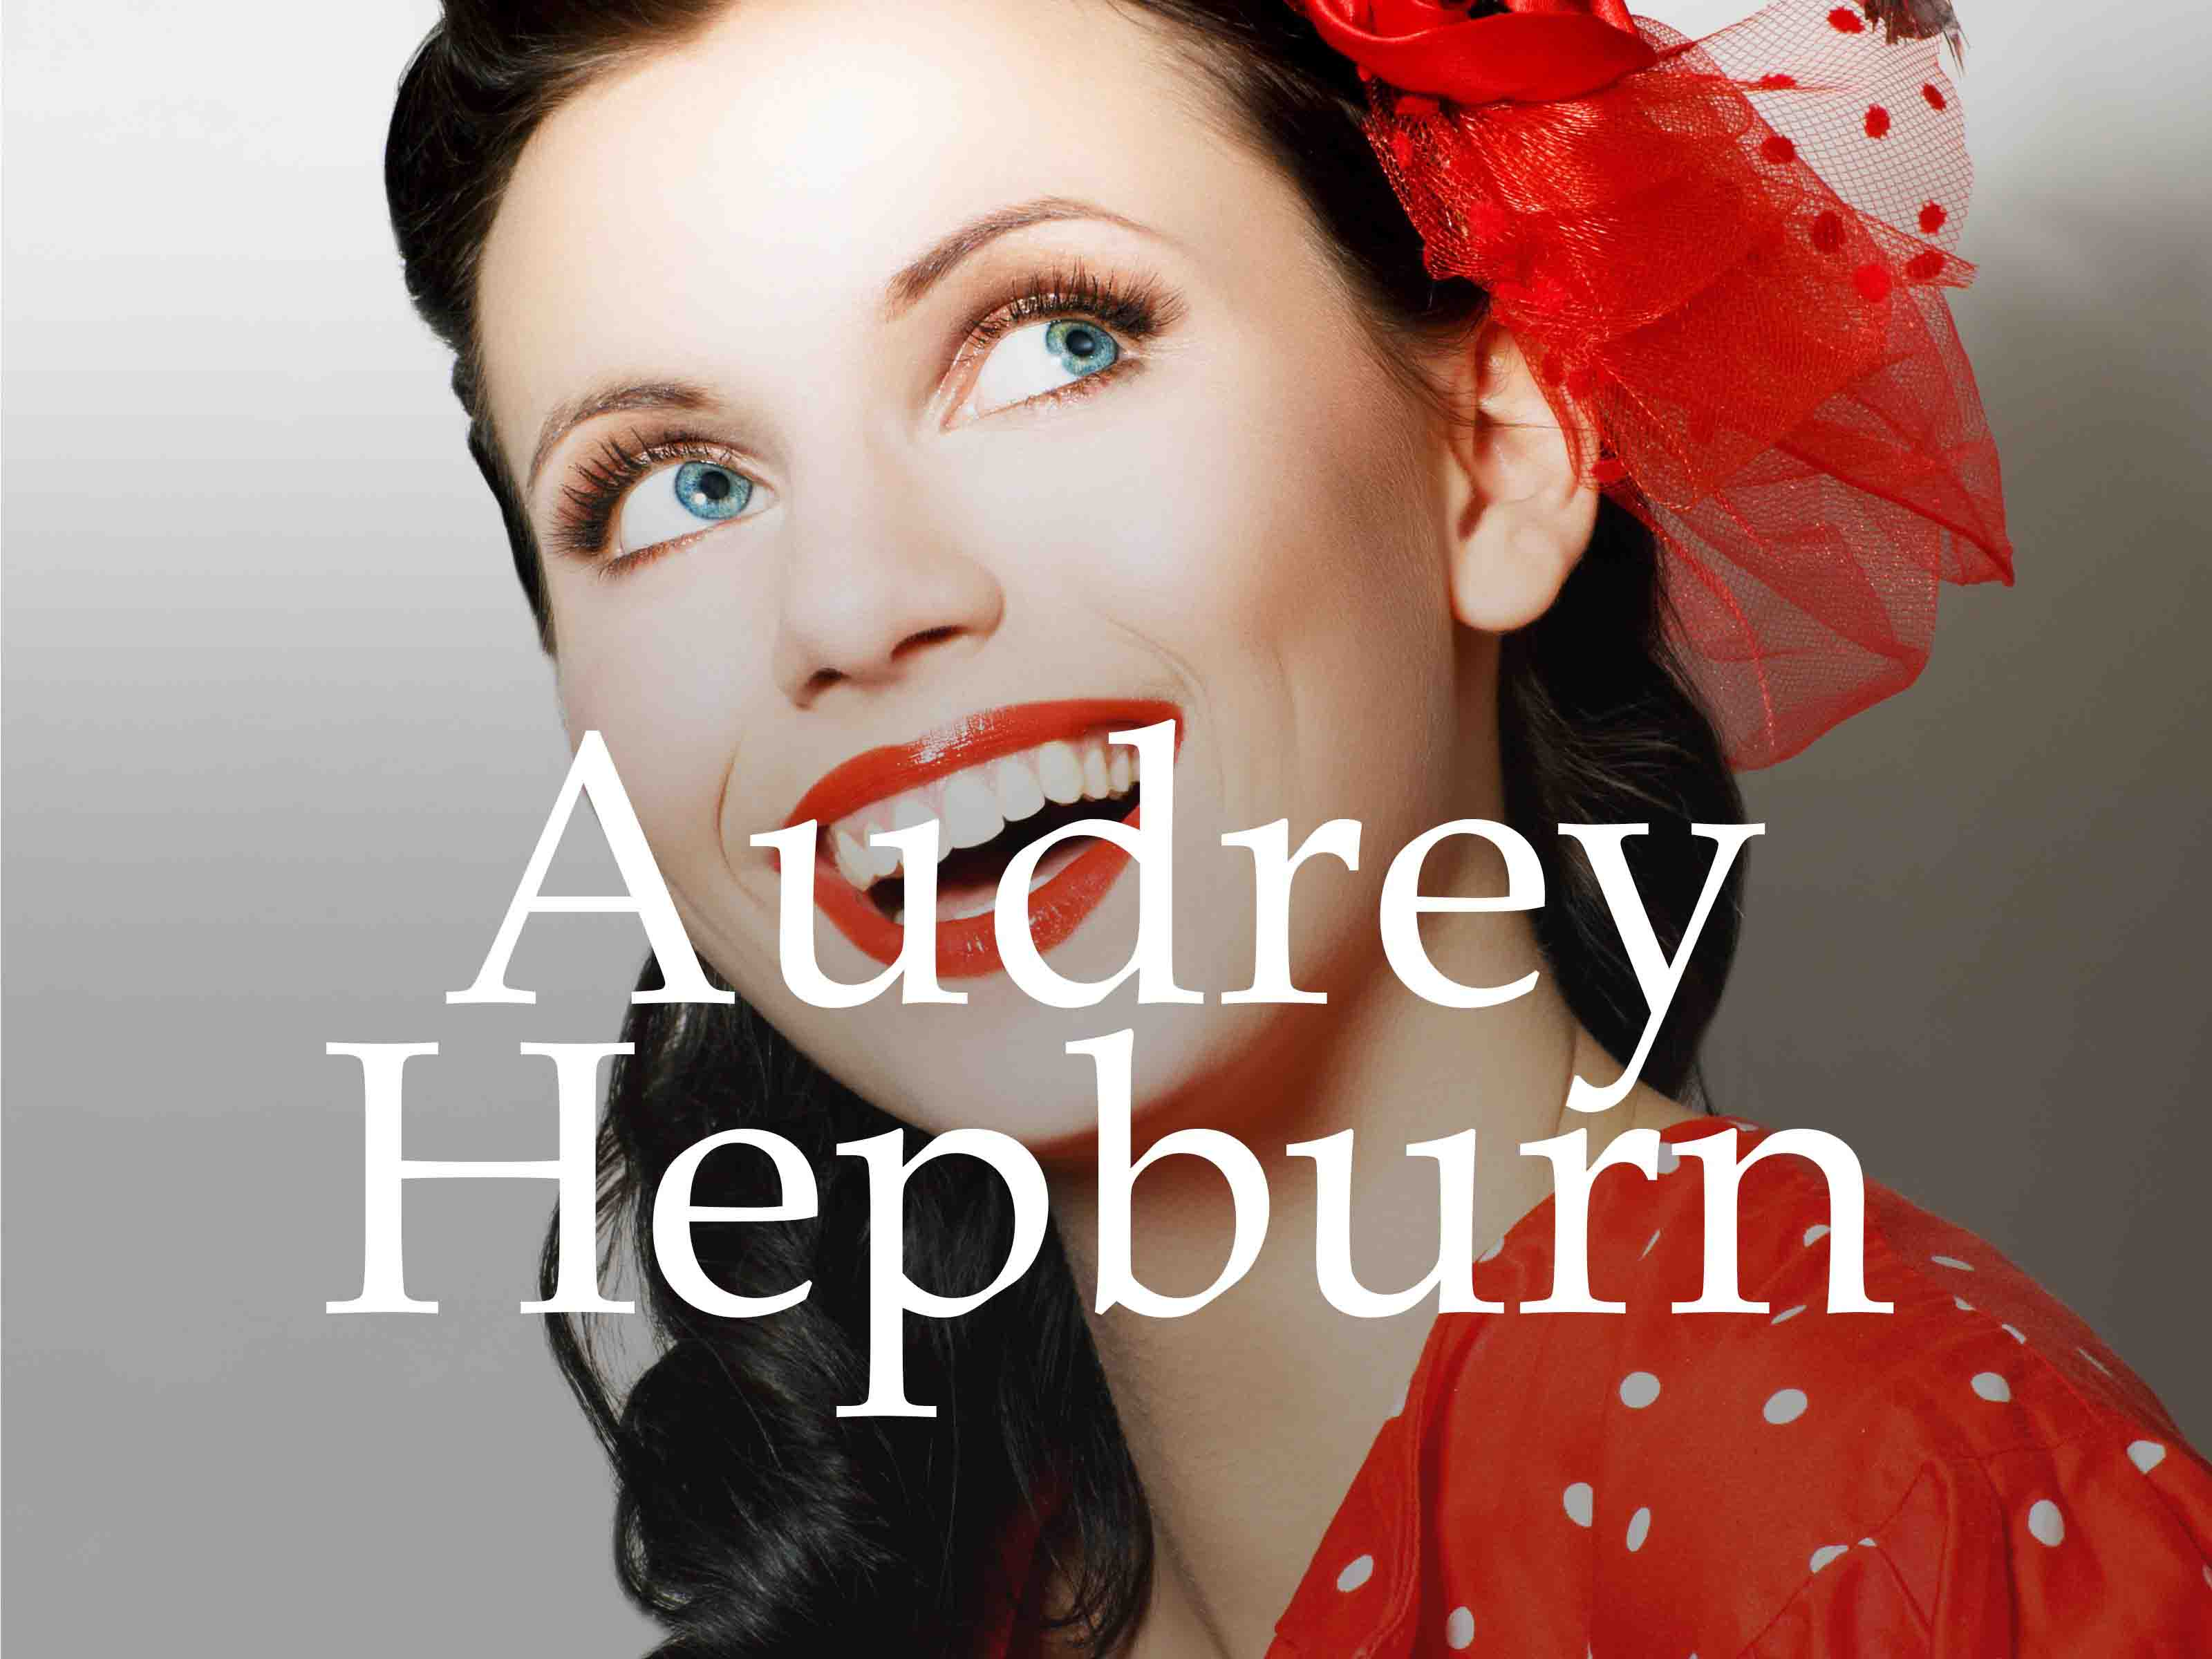 Hen Party Themes - Audrey Hepburn